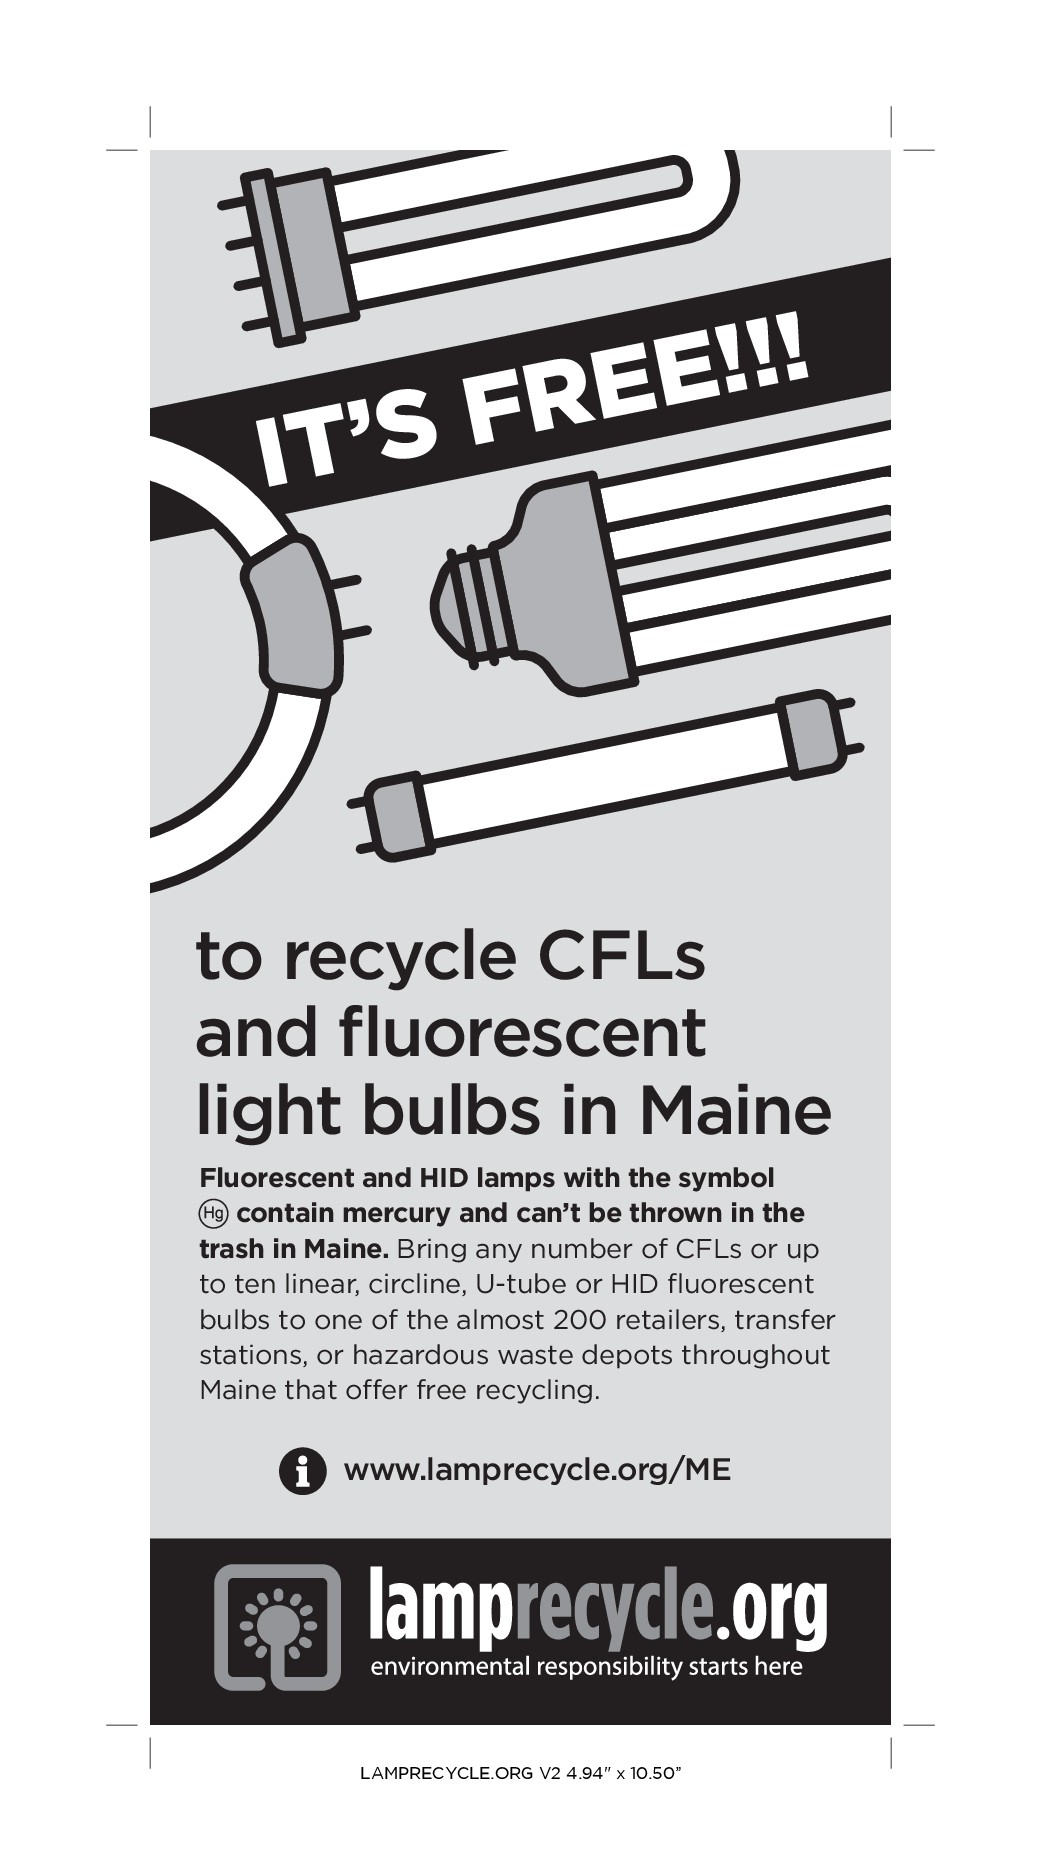 B&W 1/4 Page Print Advertisement-- Promoting Light Bulb Recycling